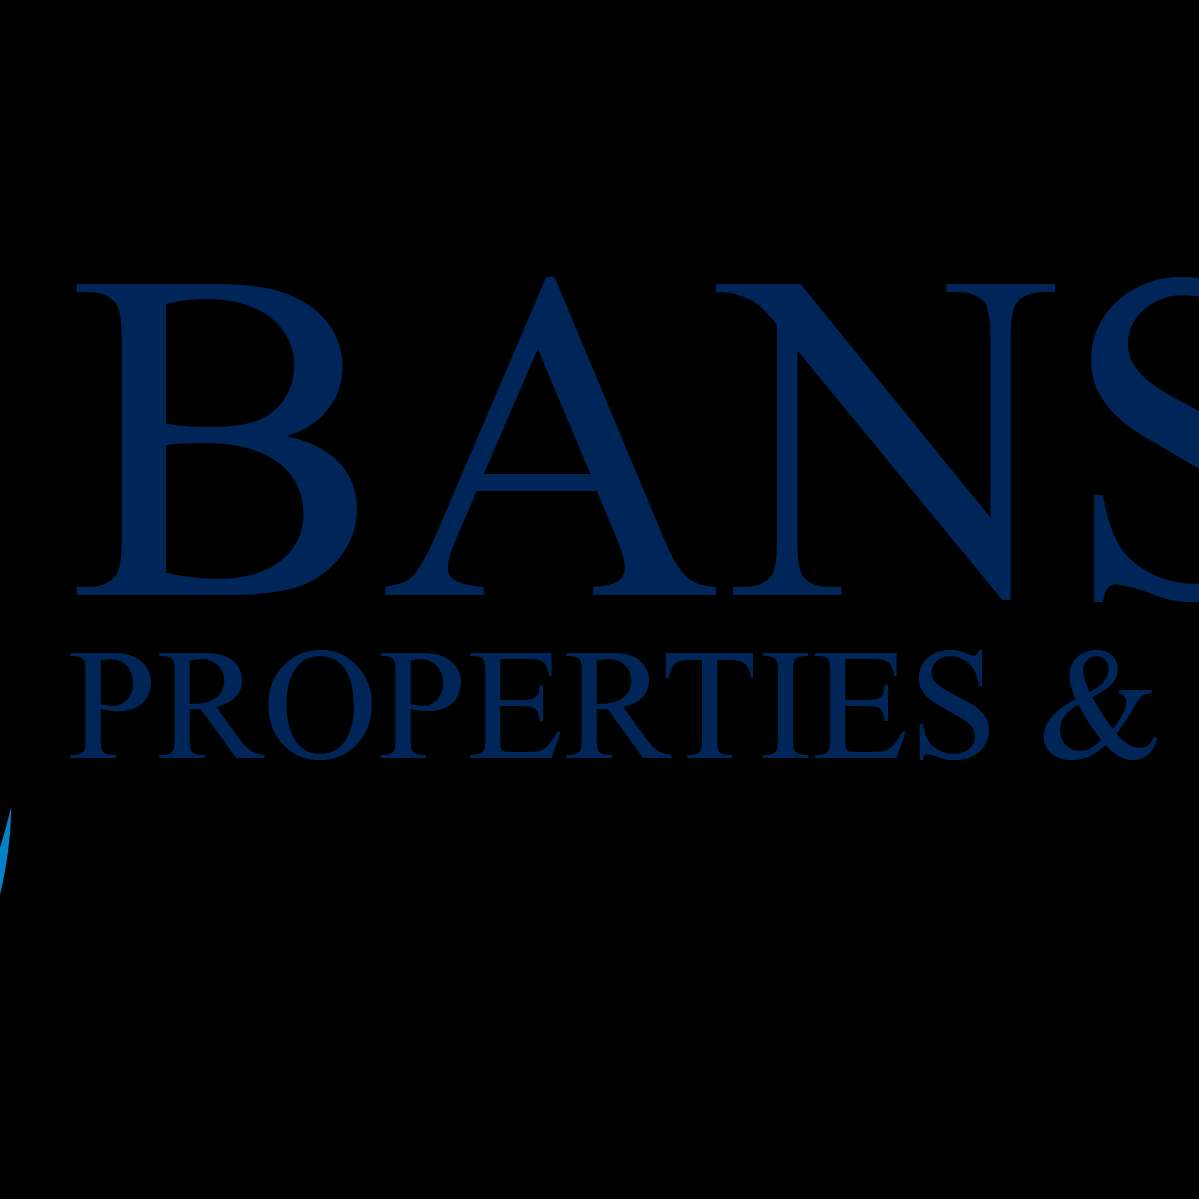 Bansal Properties & Builders